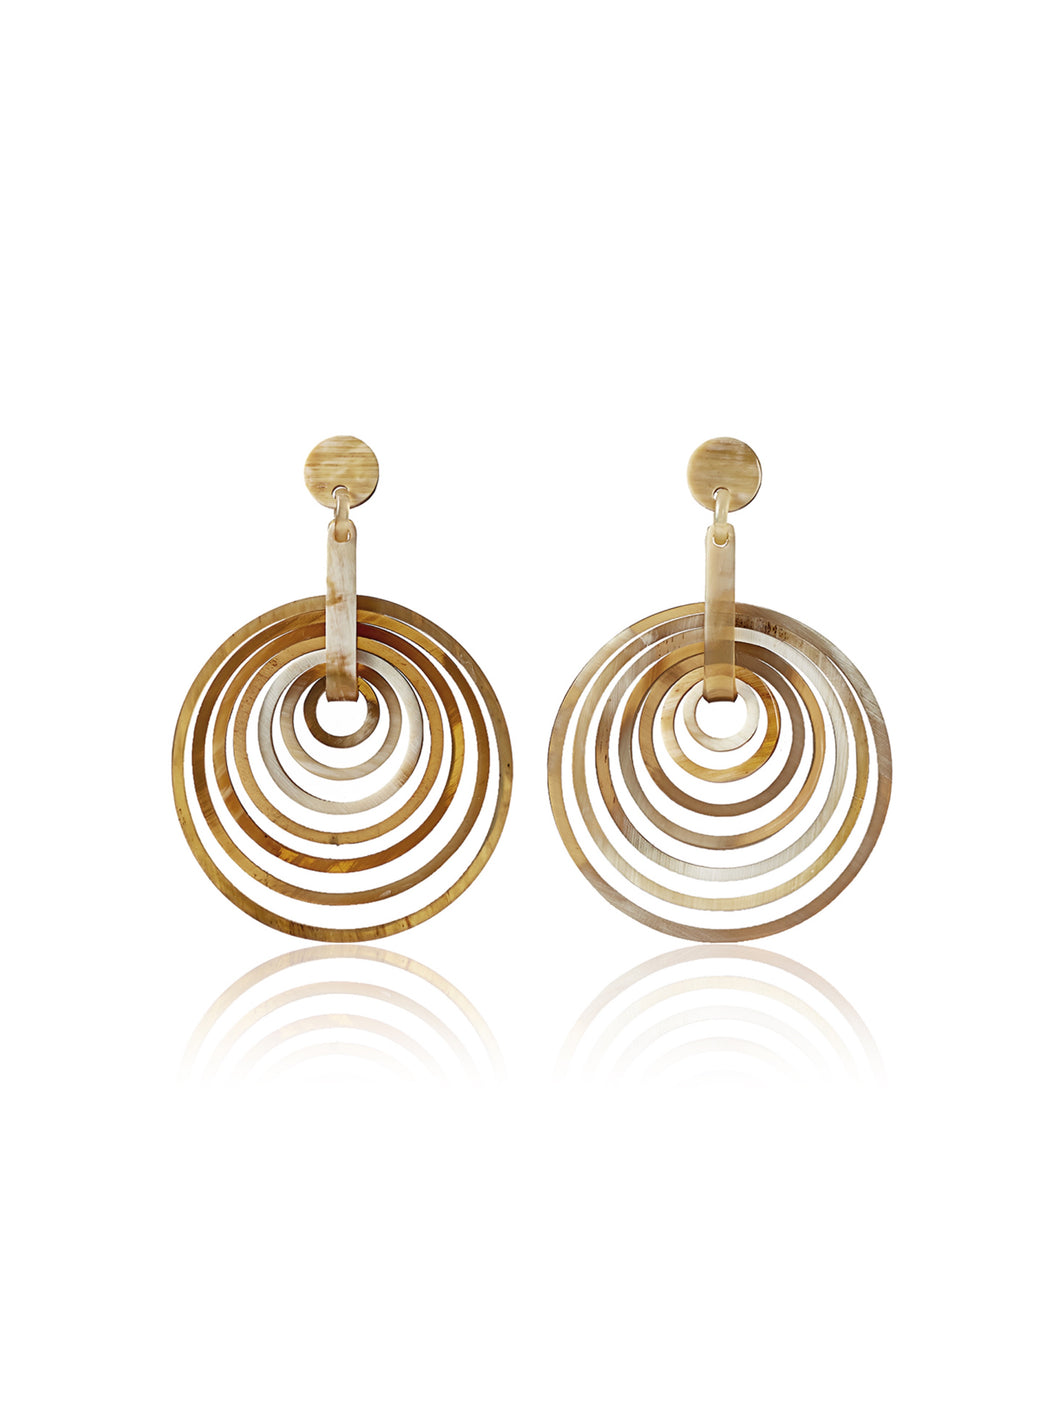 Iman earrings caramel